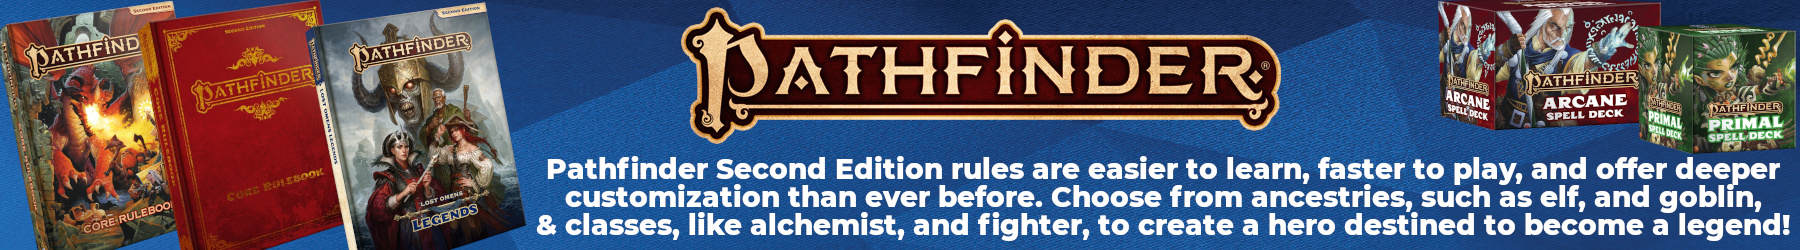 Pathfinder Second Edition rules are easier to learn, faster to play, and offer deeper customization than ever before. Choose from ancestries, such as elf, and goblin, & classes, like alchemist, and fighter, to create a hero destined to become a legend!